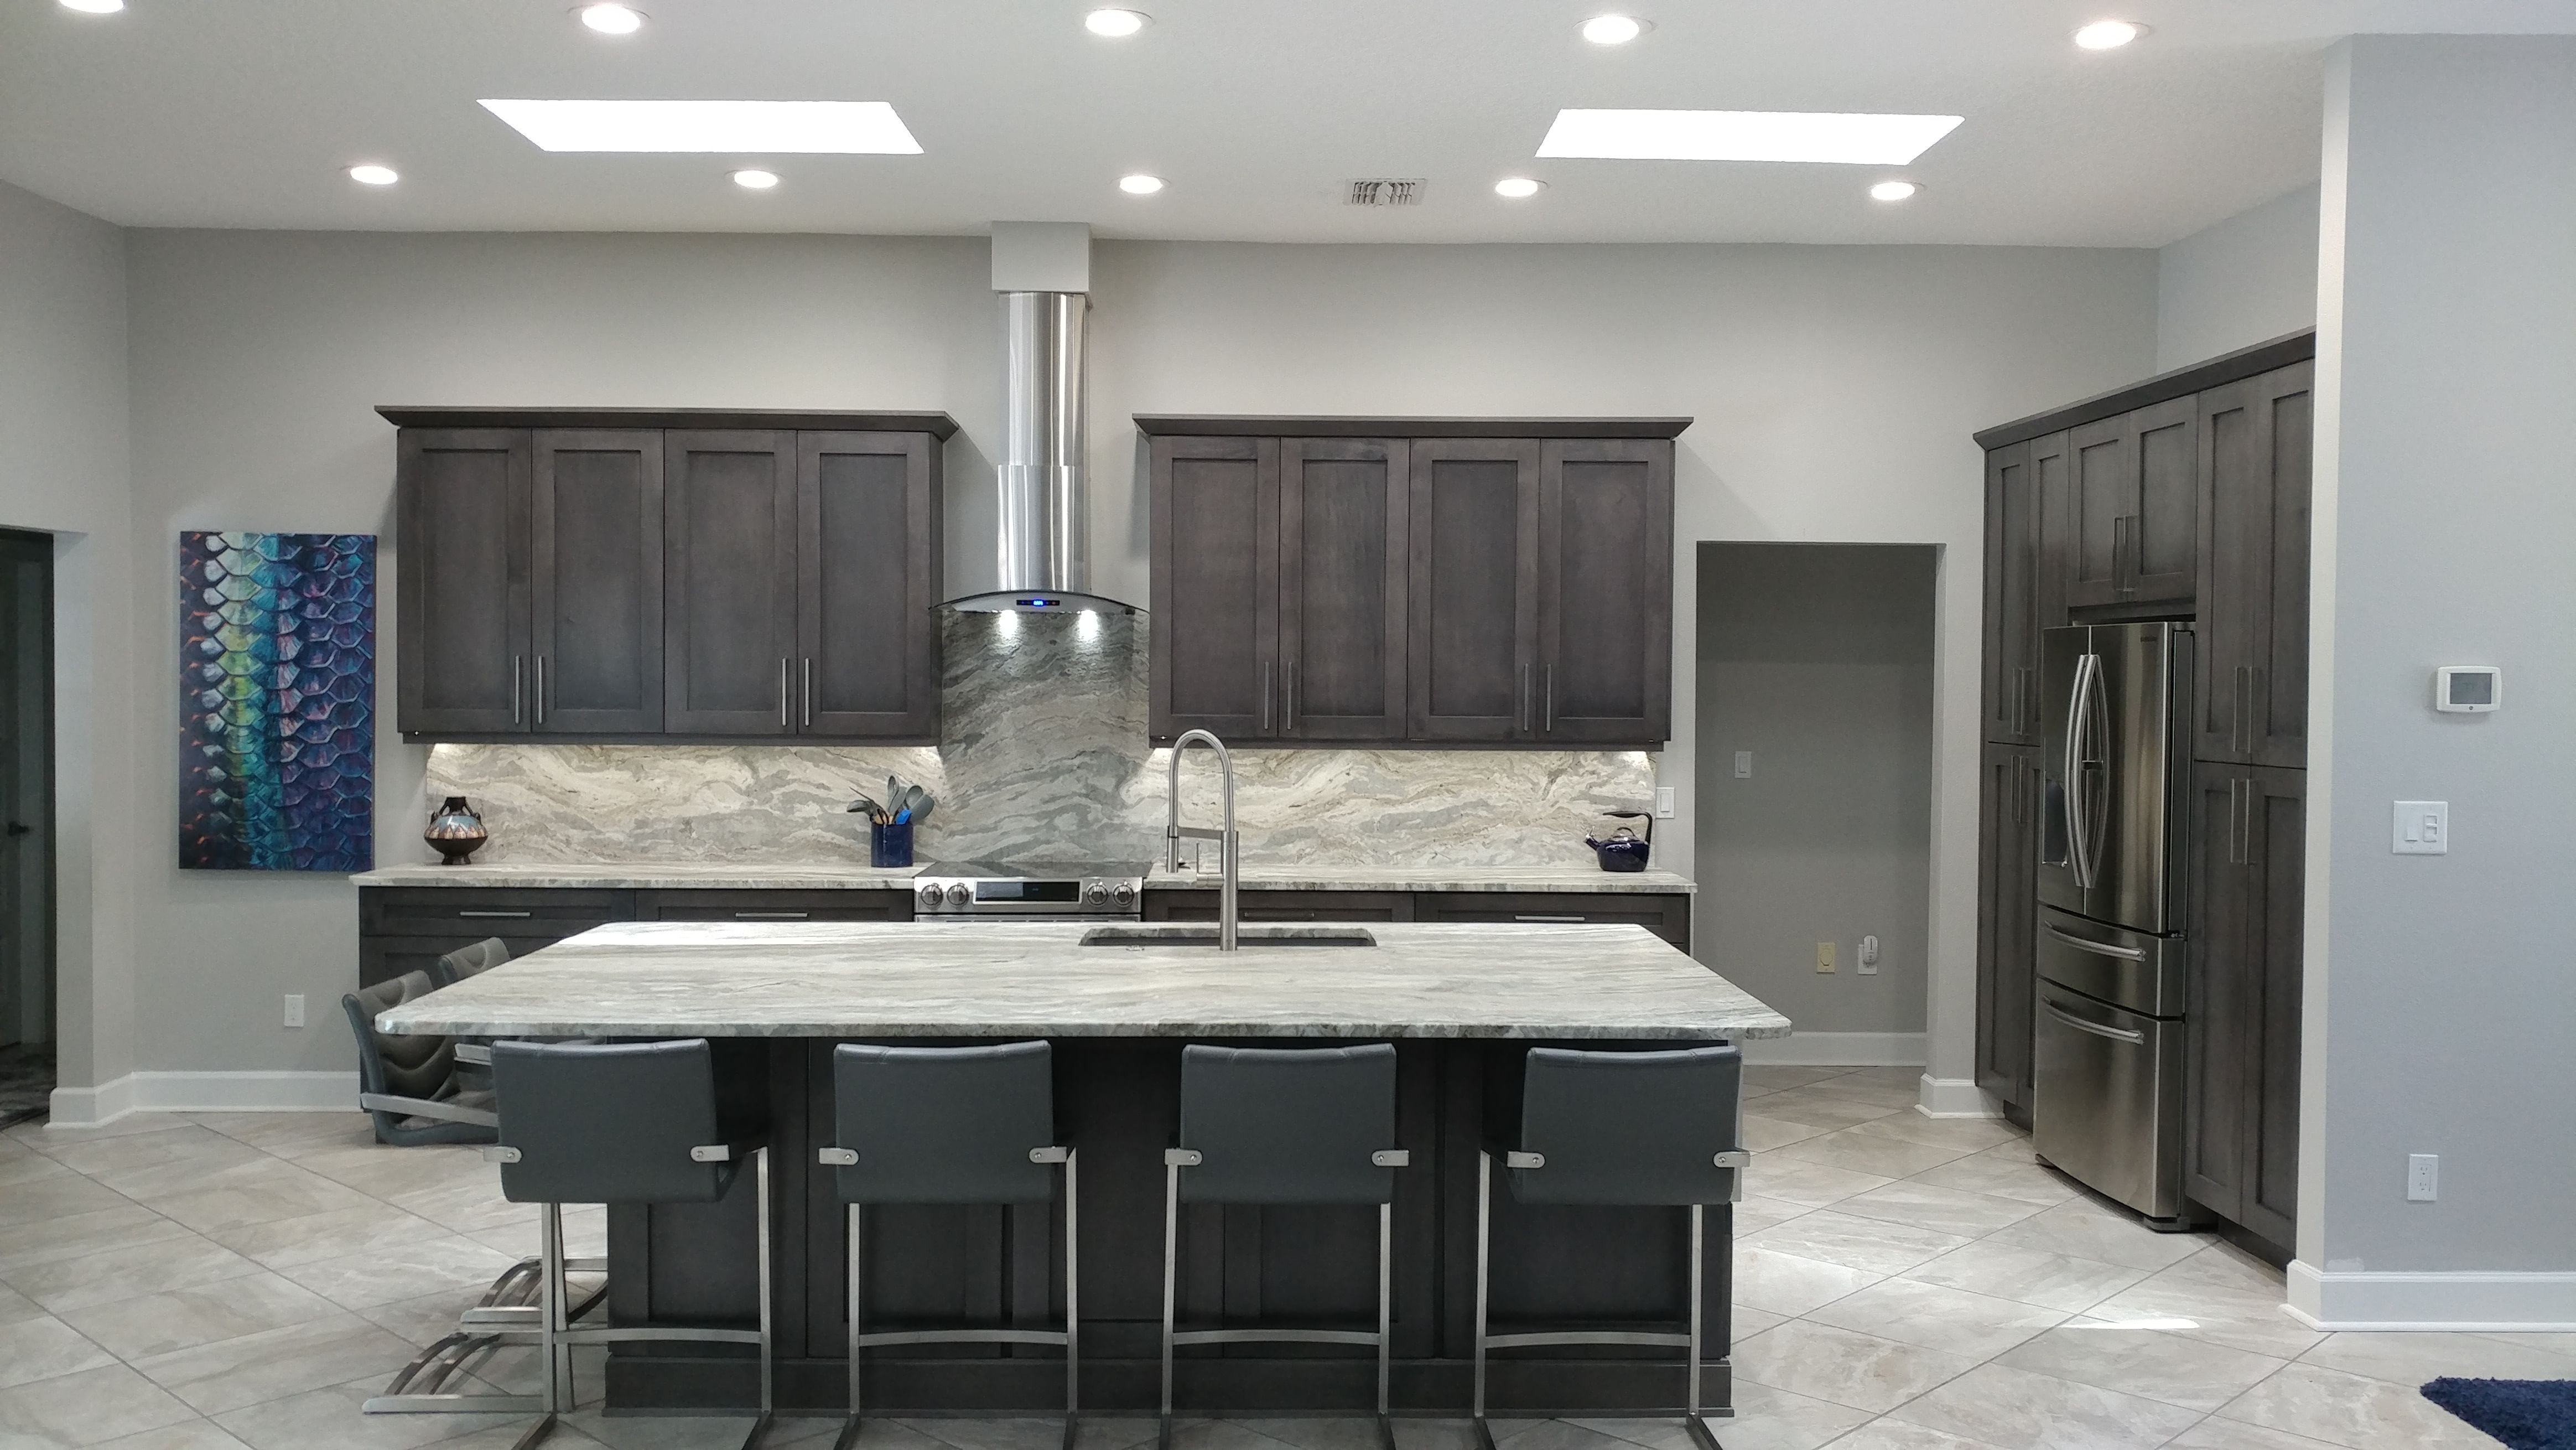 The Soothing Pallet Of Slate Shaker Cabinets By Eudora And Fantasy Brown Quartzite With A Leather Finish Make This Home A Shaker Cabinets Slate Kitchen Cabinet